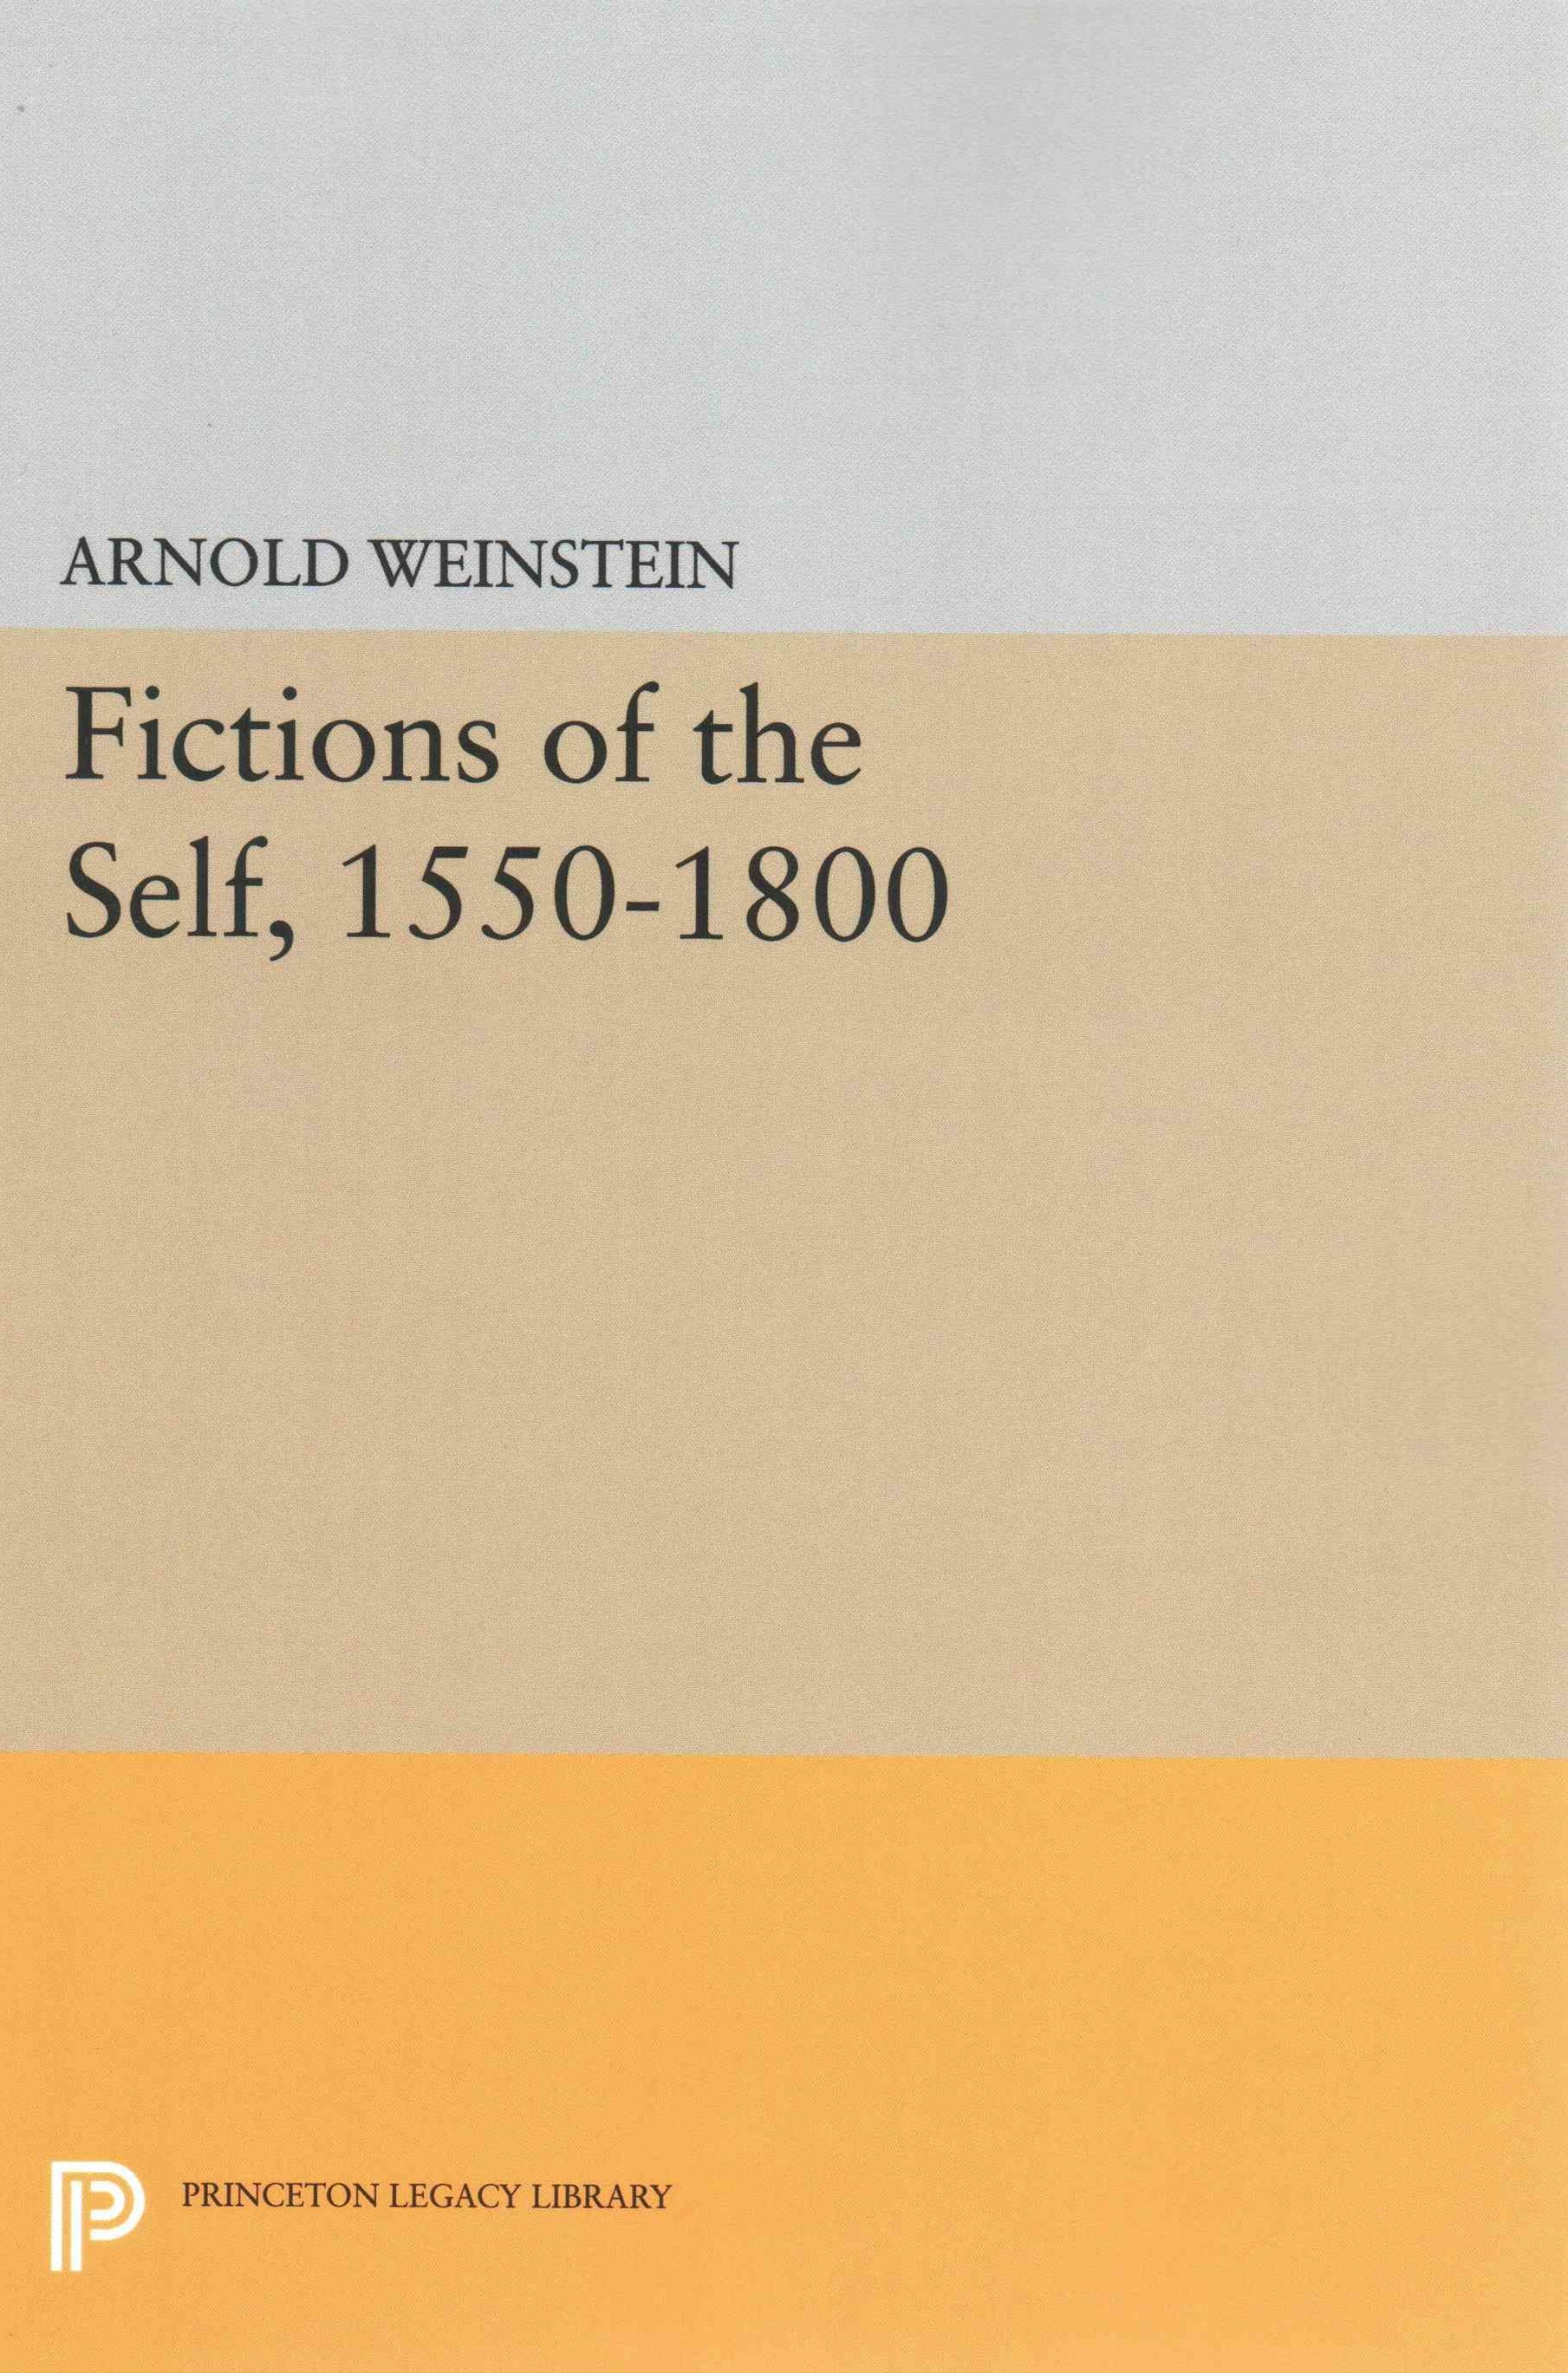 Fictions of the Self, 1550-1800